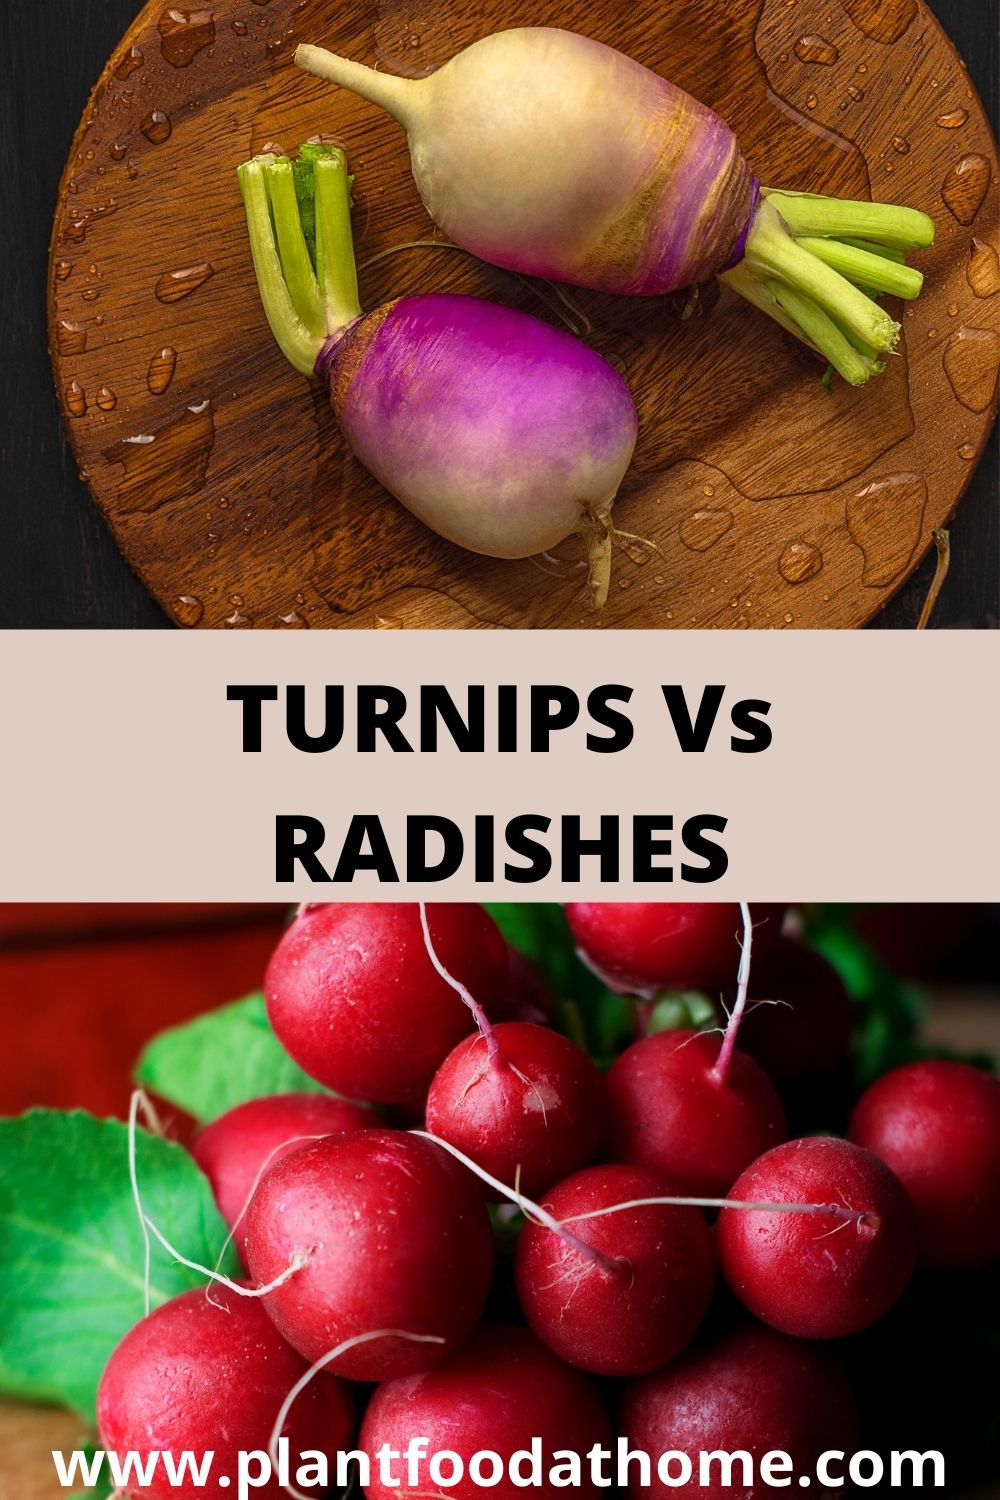 Turnips Vs Radishes - What is the Difference